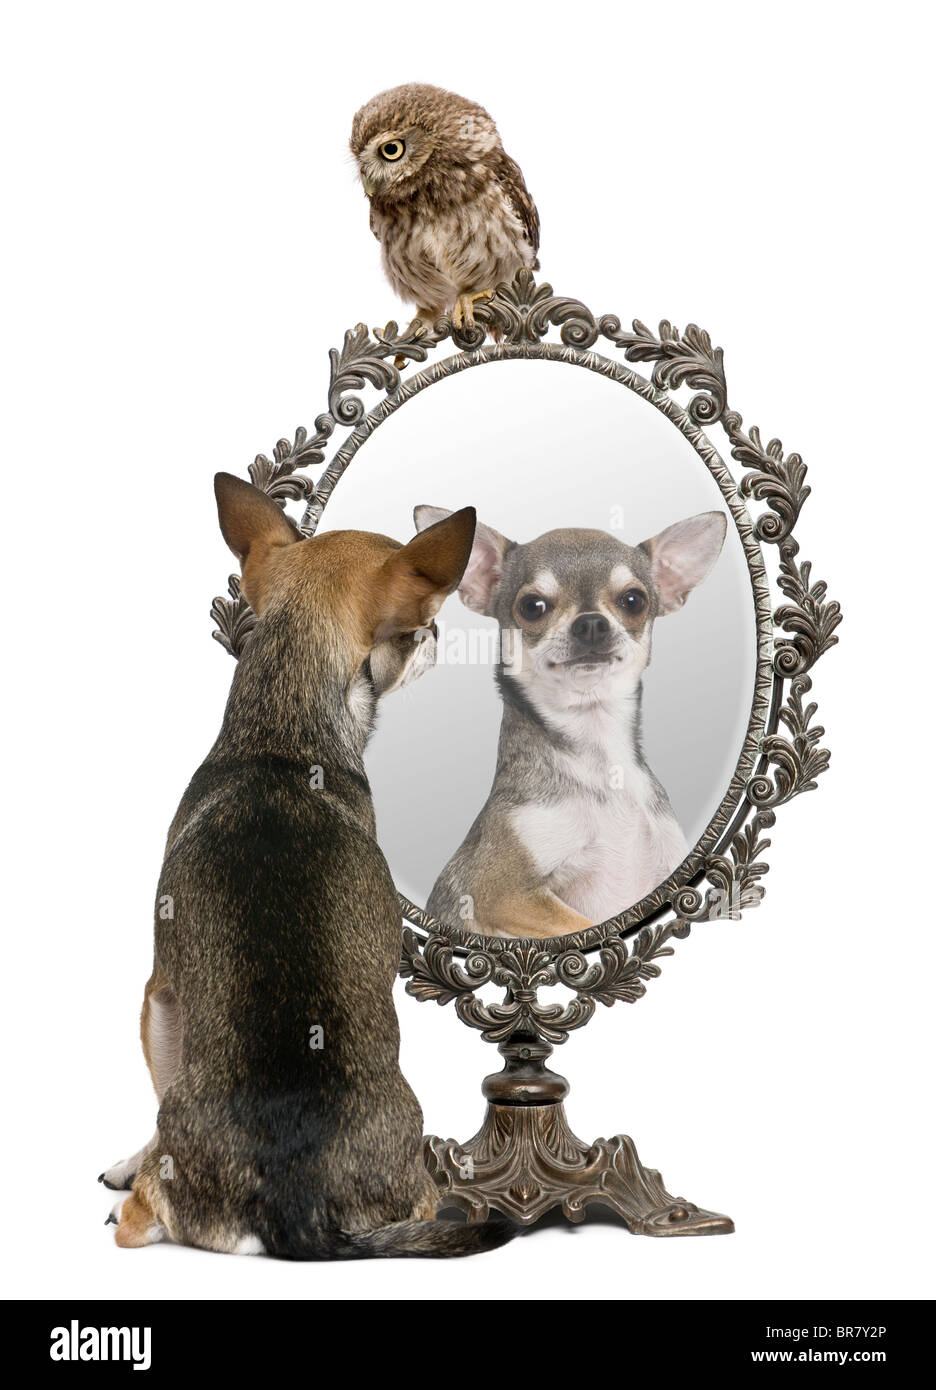 Chihuahua and a Little Owl, 50 days old, Athene noctua, in front of a white background with a mirror Stock Photo